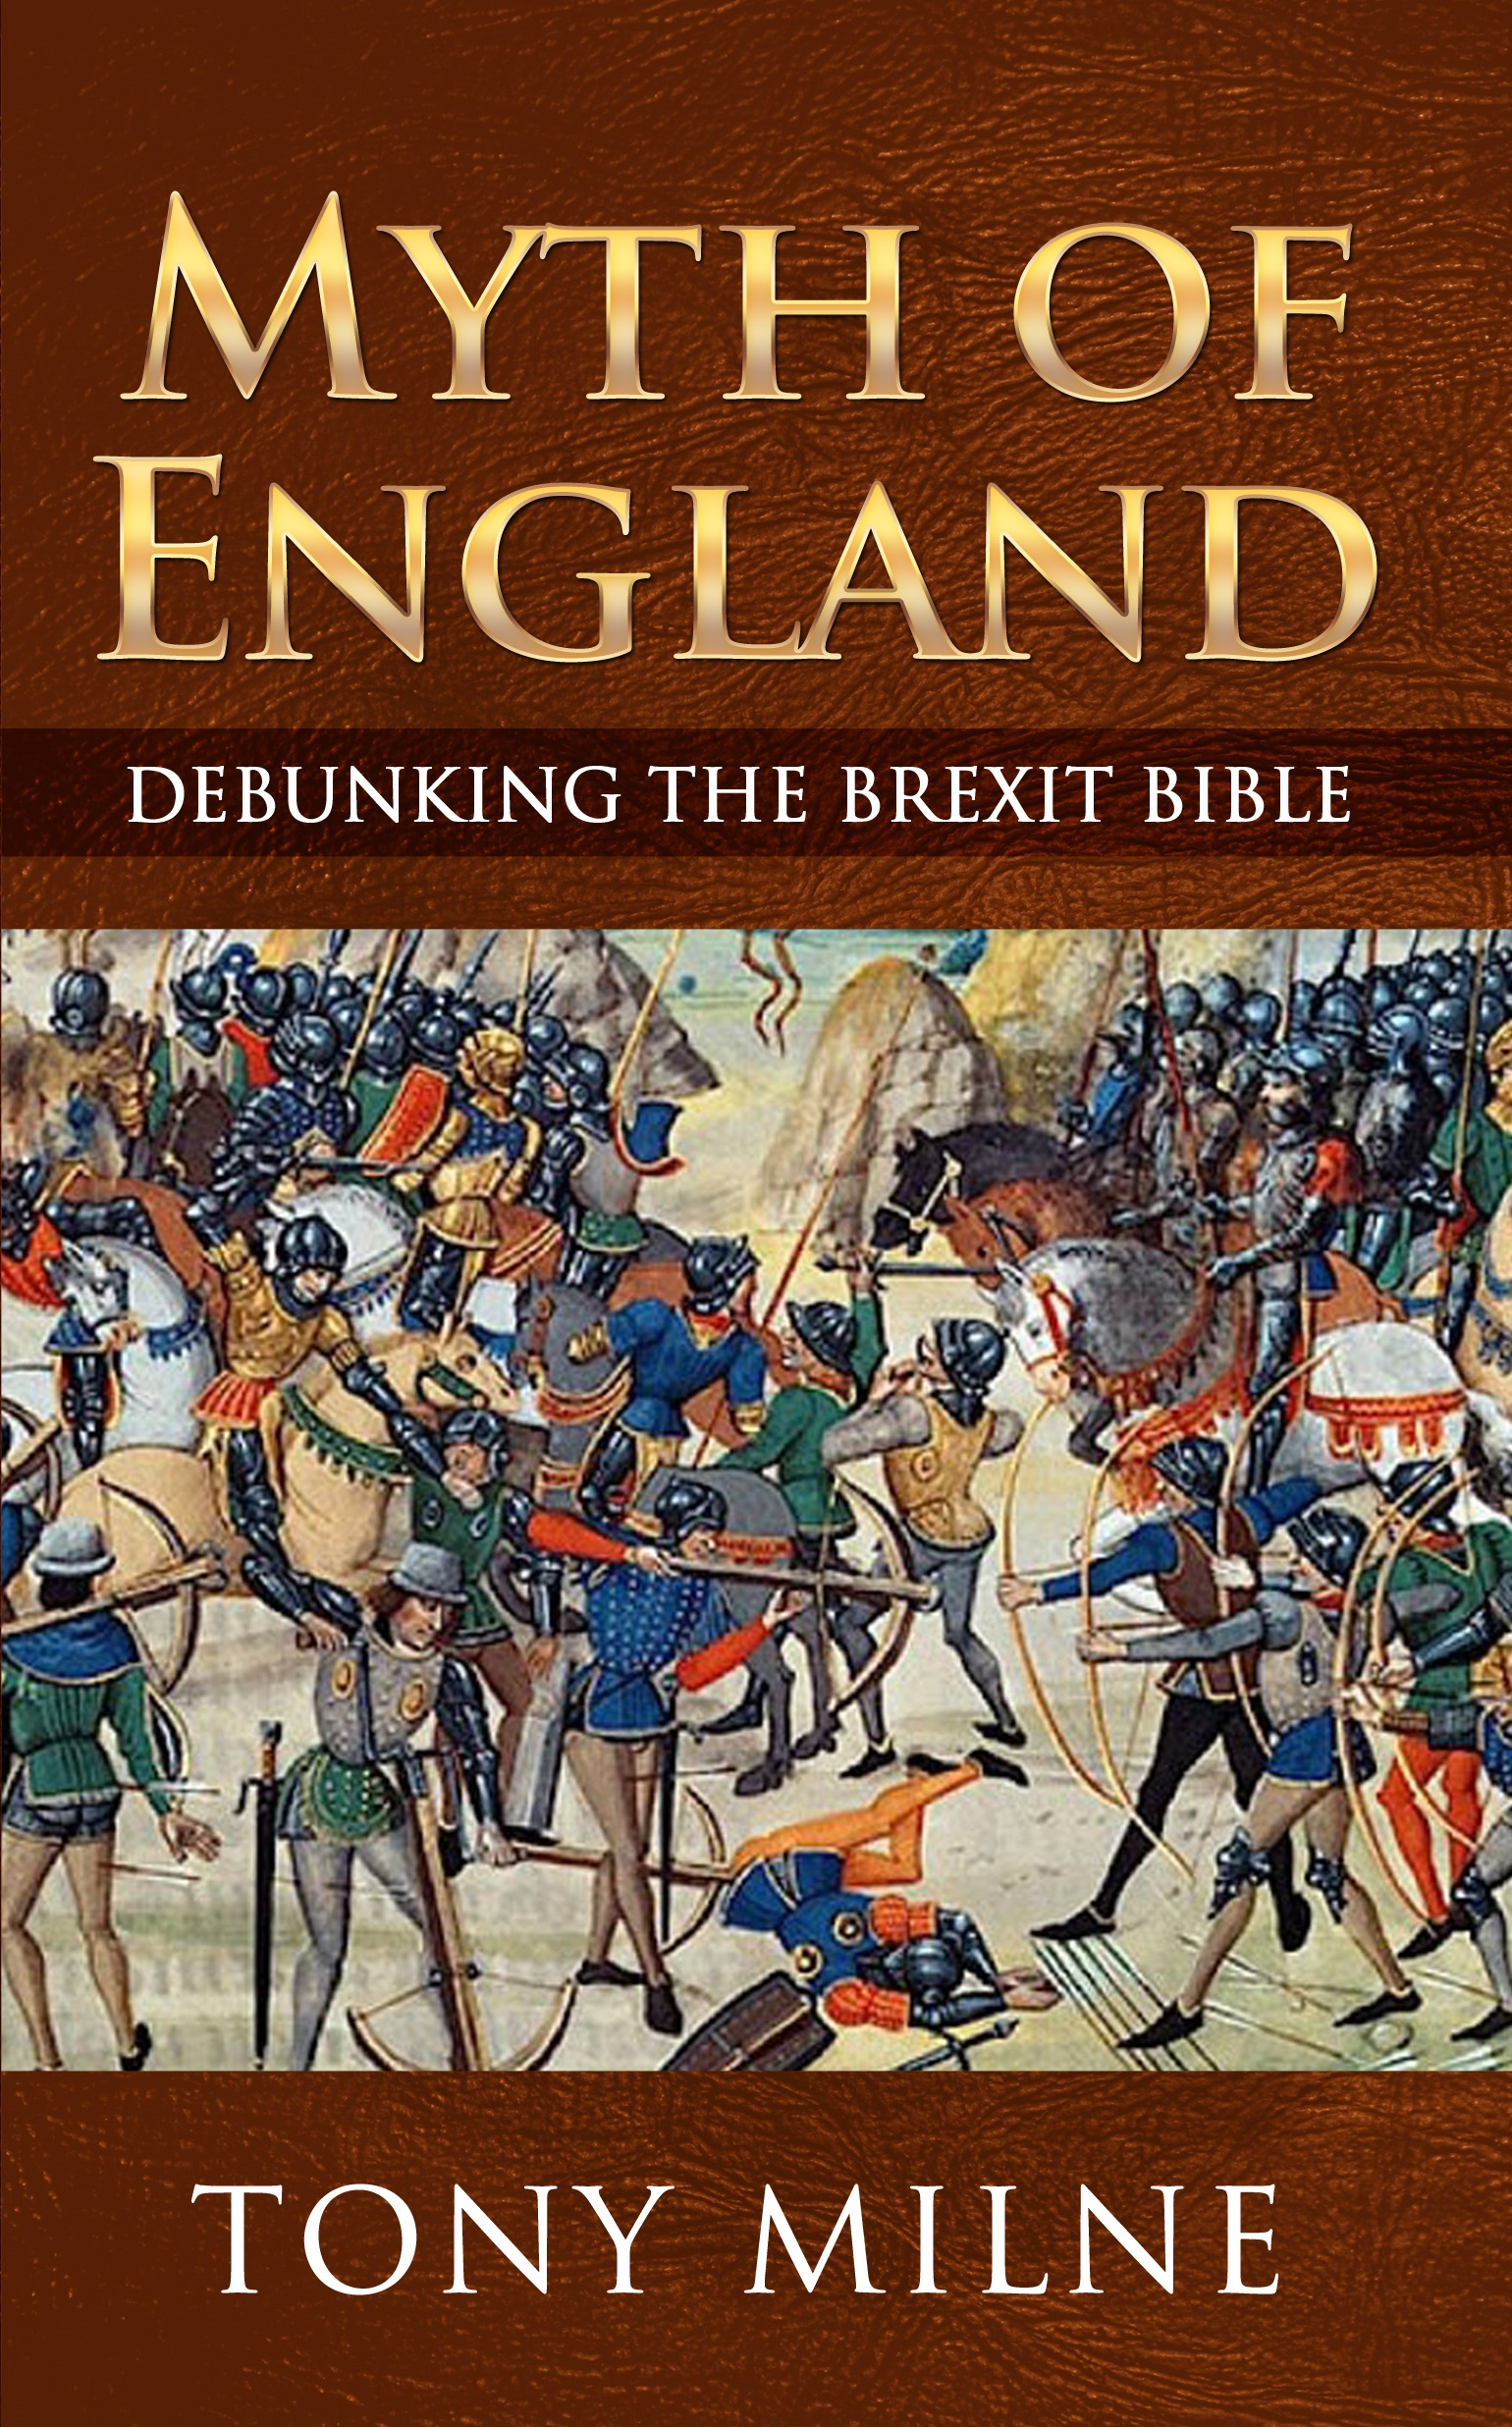 myth-of-england-front-cover-only